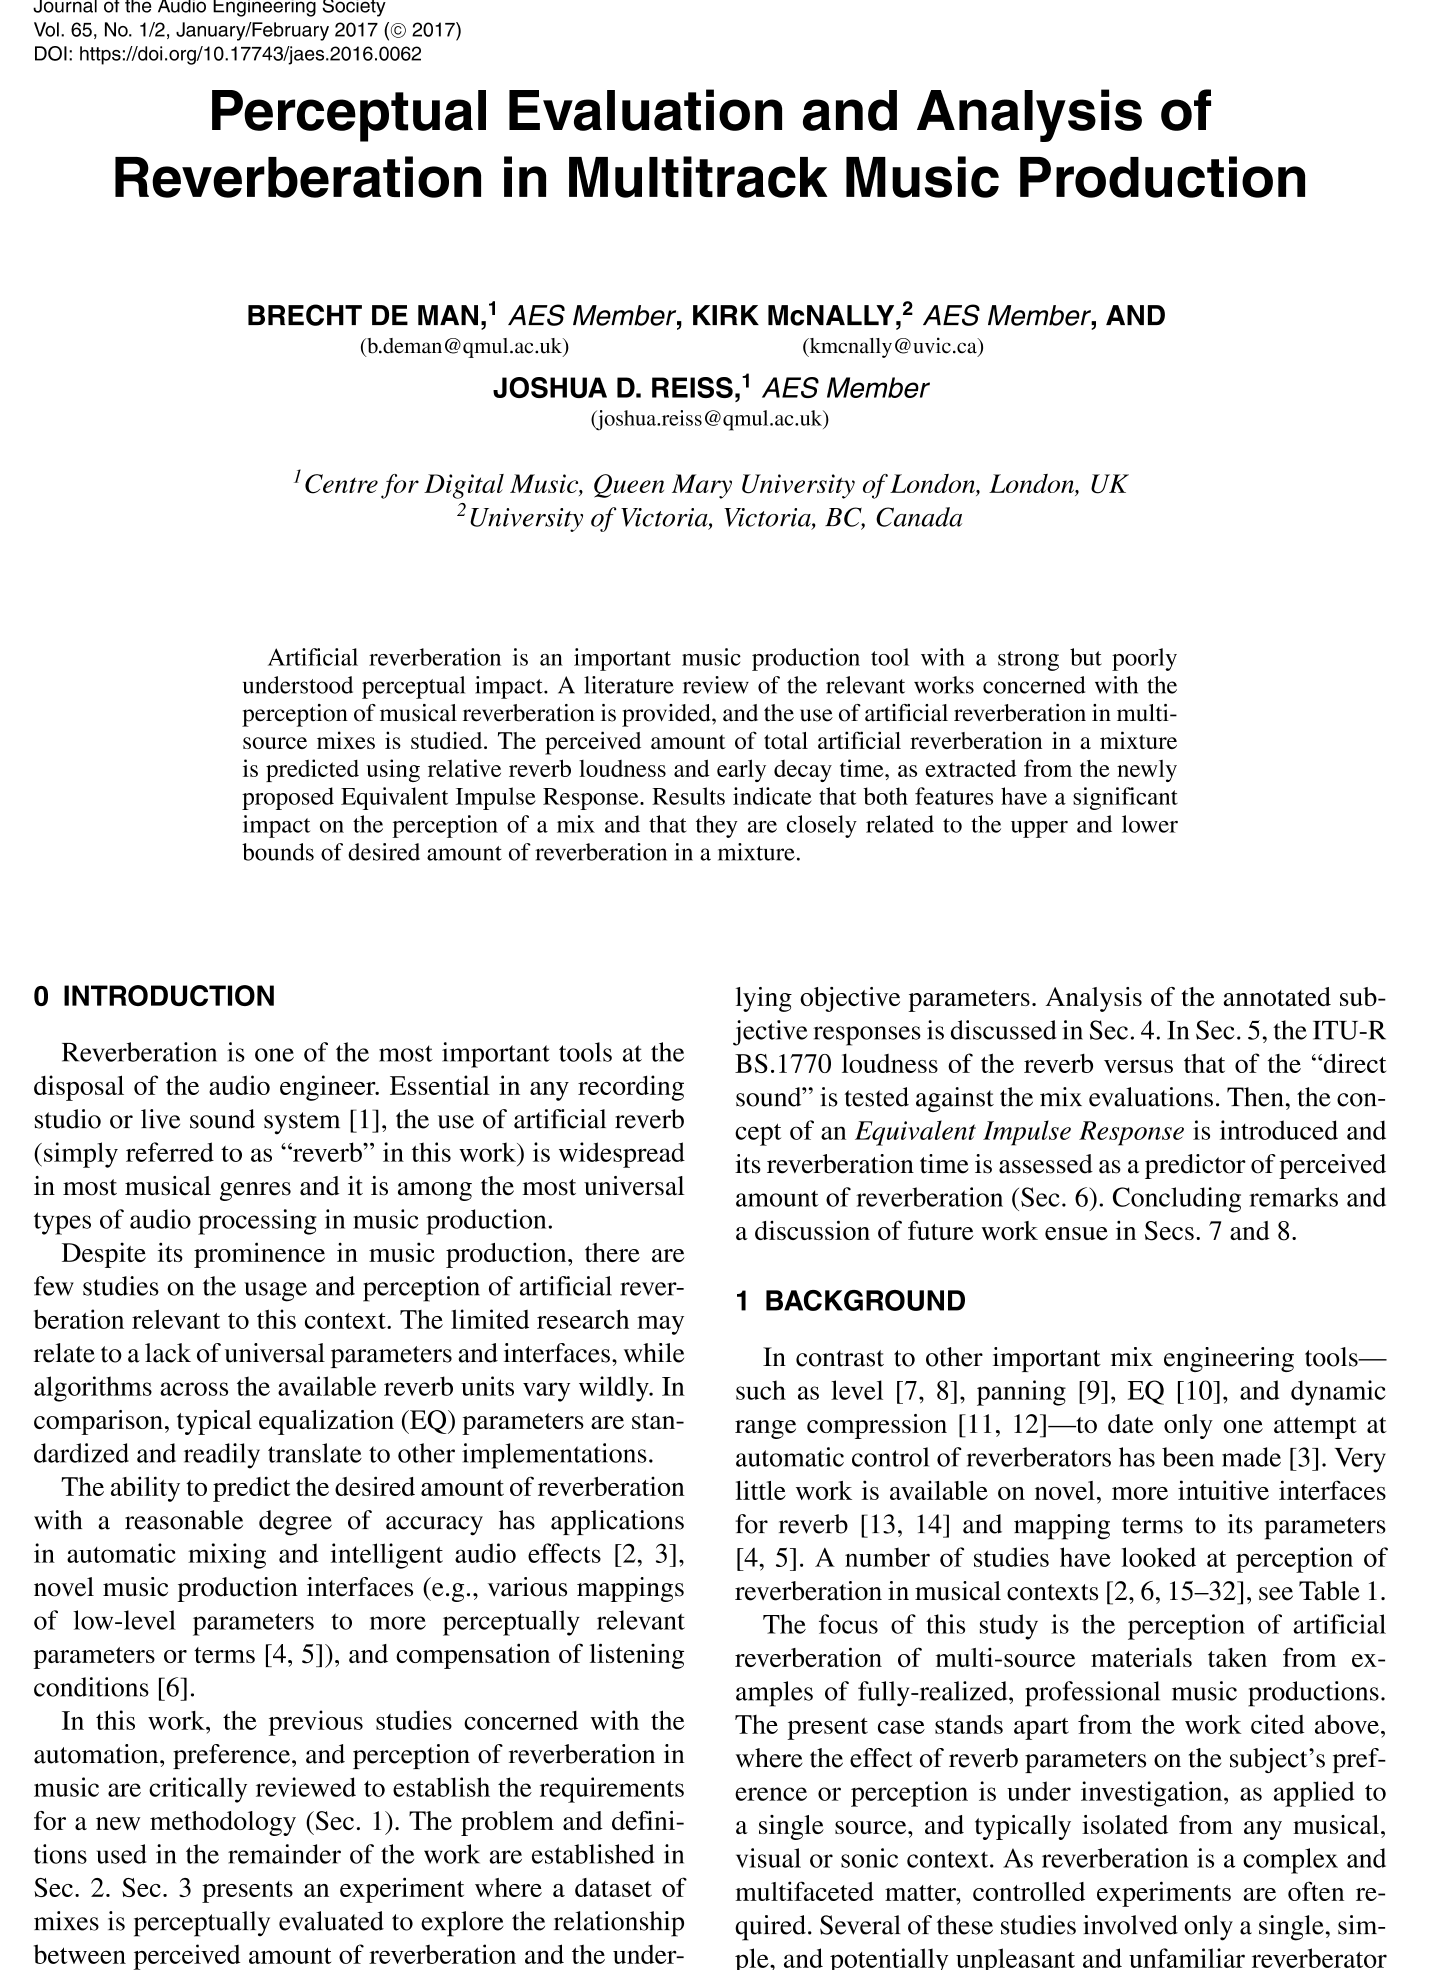 AES E-Library » Perceptual Evaluation and Analysis of Reverberation